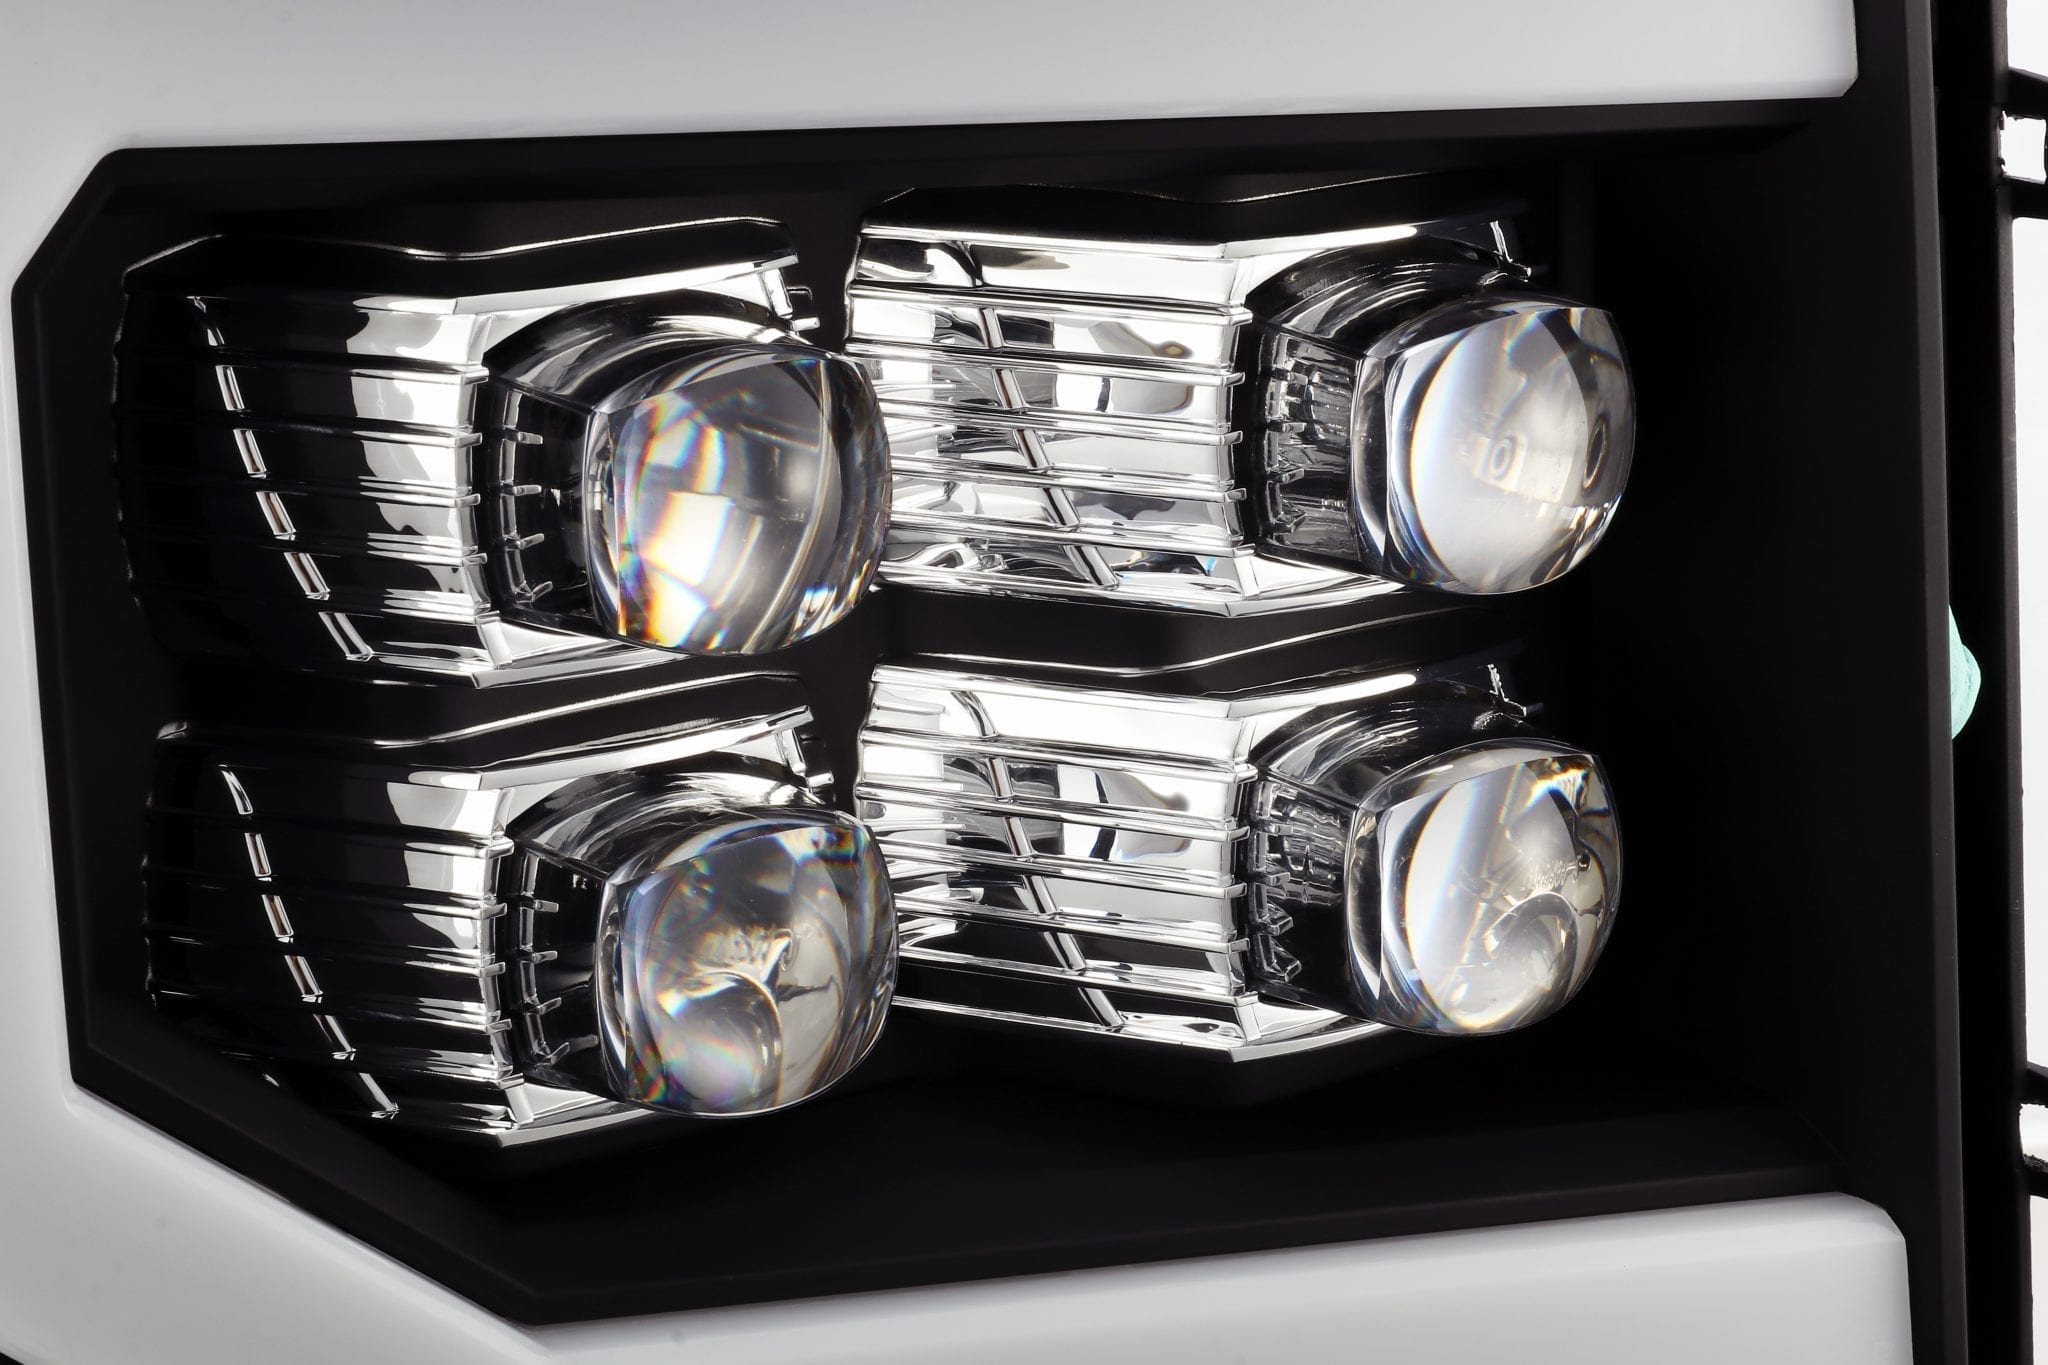 2007 2008 2009 2010 2011 2012 2013 GMC Sierra NOVA-Series Projector Headlights Black